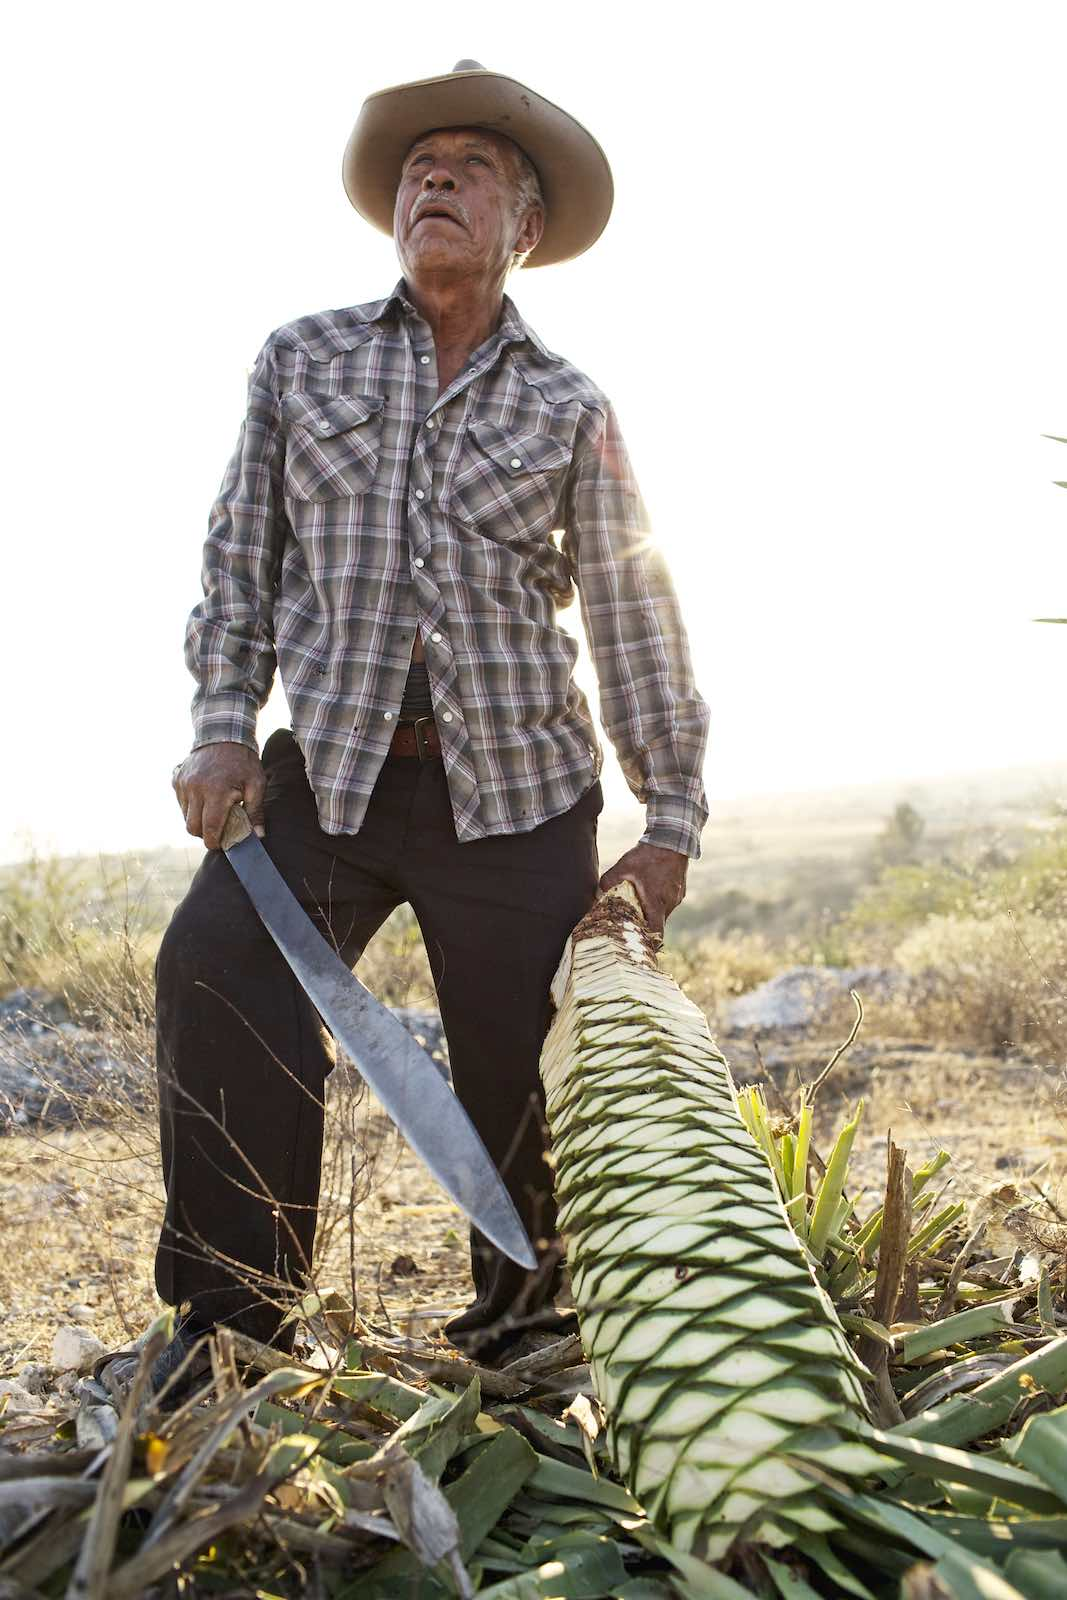 Jody Horton Photography - Farmer with agave plant and machete.